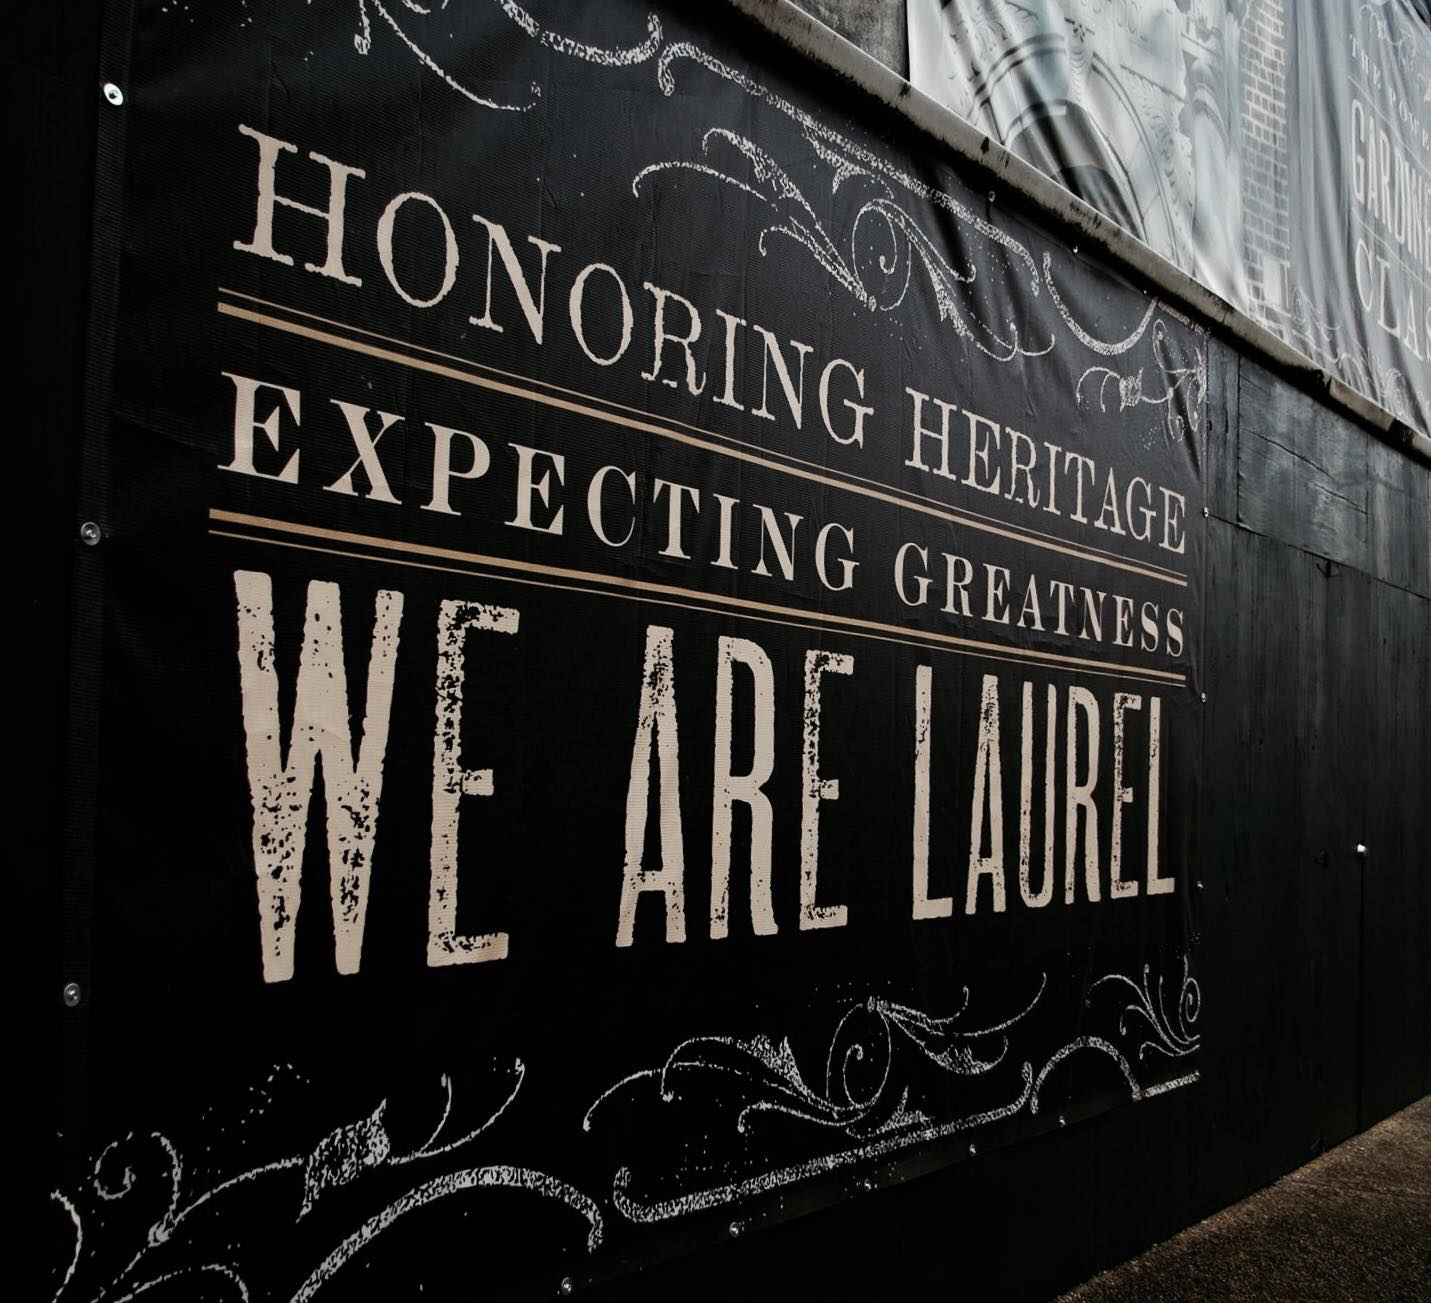 We Are Laurel banner - Wamble building